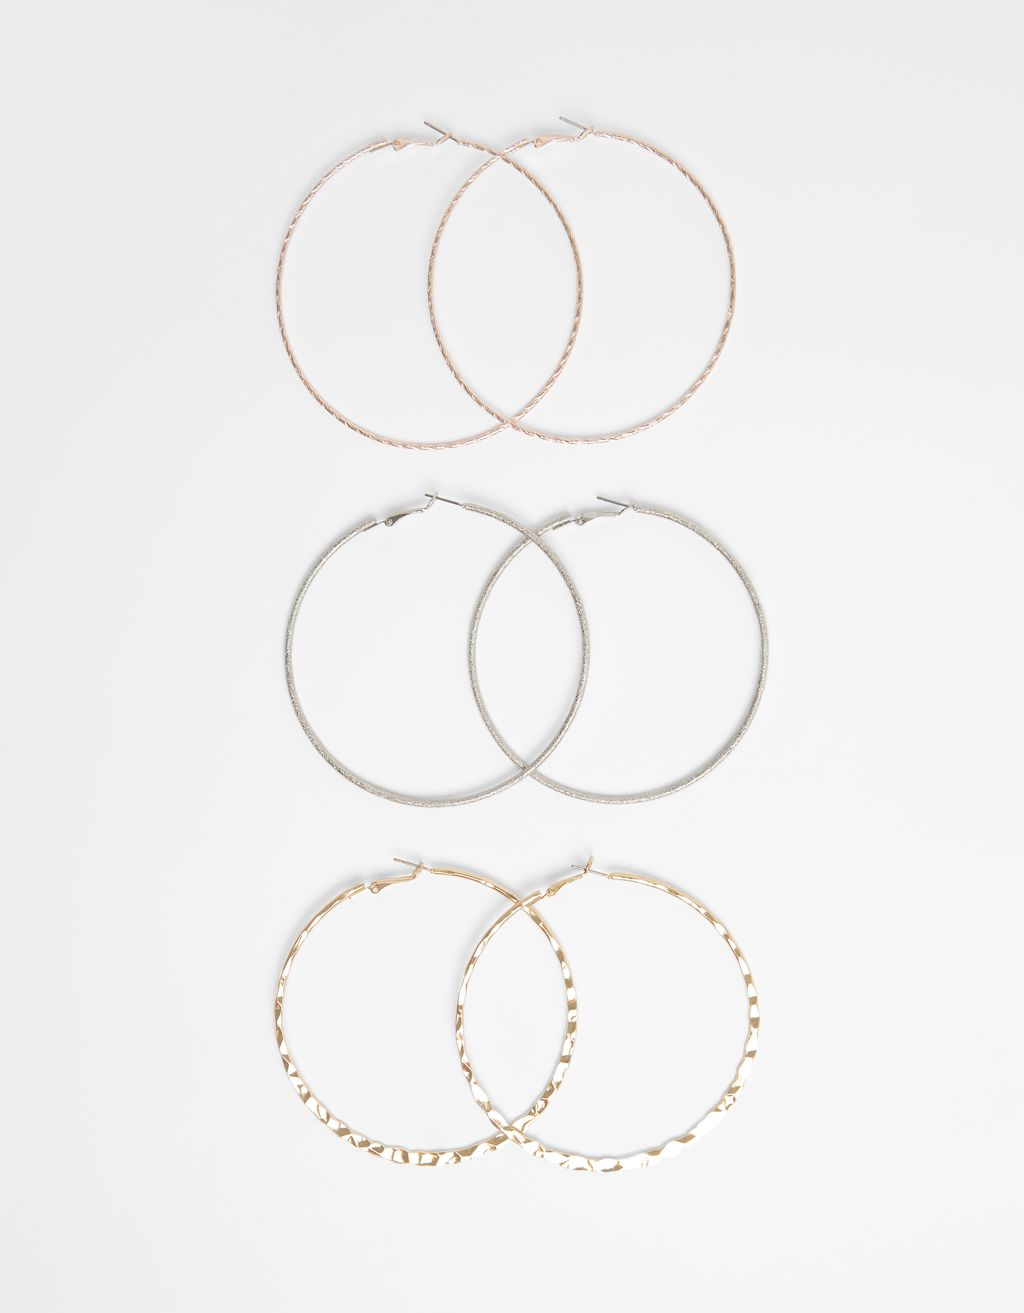 Set of mirrored hoop earrings